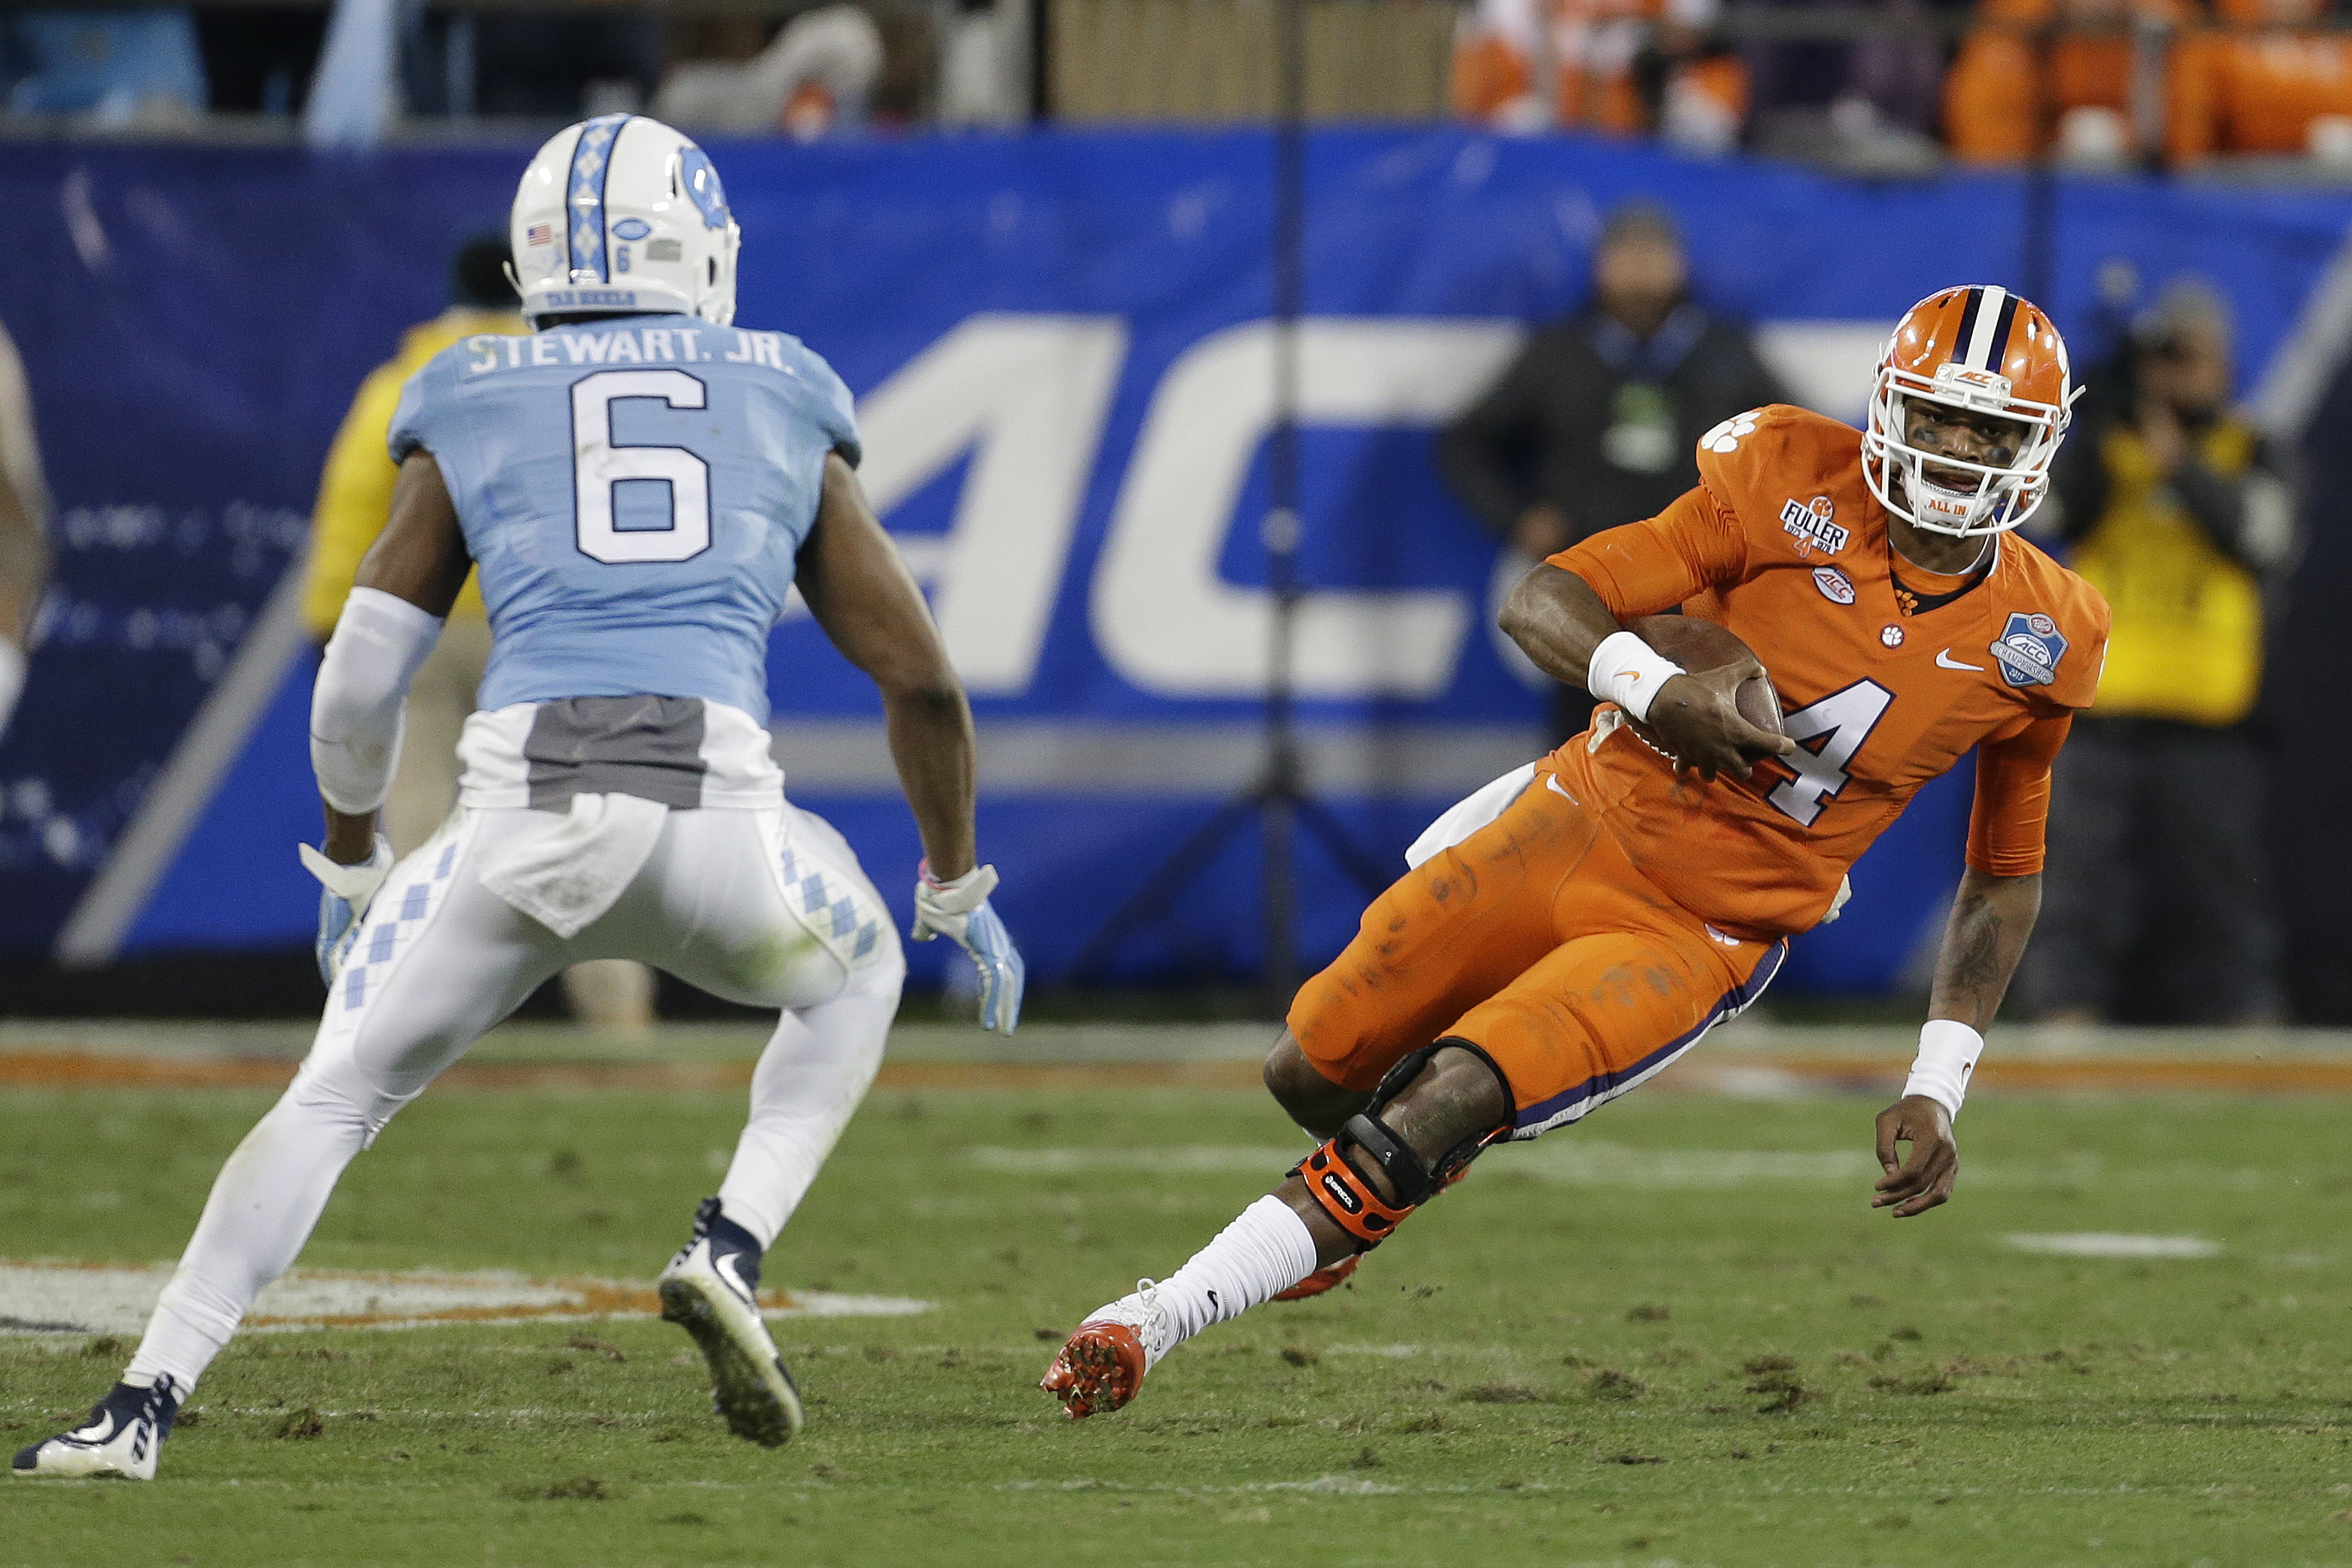 *FILE - In this Saturday, Dec. 5, 2015 file photo, Clemson quarterback Deshaun Watson (4) runs the ball as North Carolina's M.J. Stewart (6) moves in for the tackle during the first half of the Atlantic Coast Conference championship NCAA college football